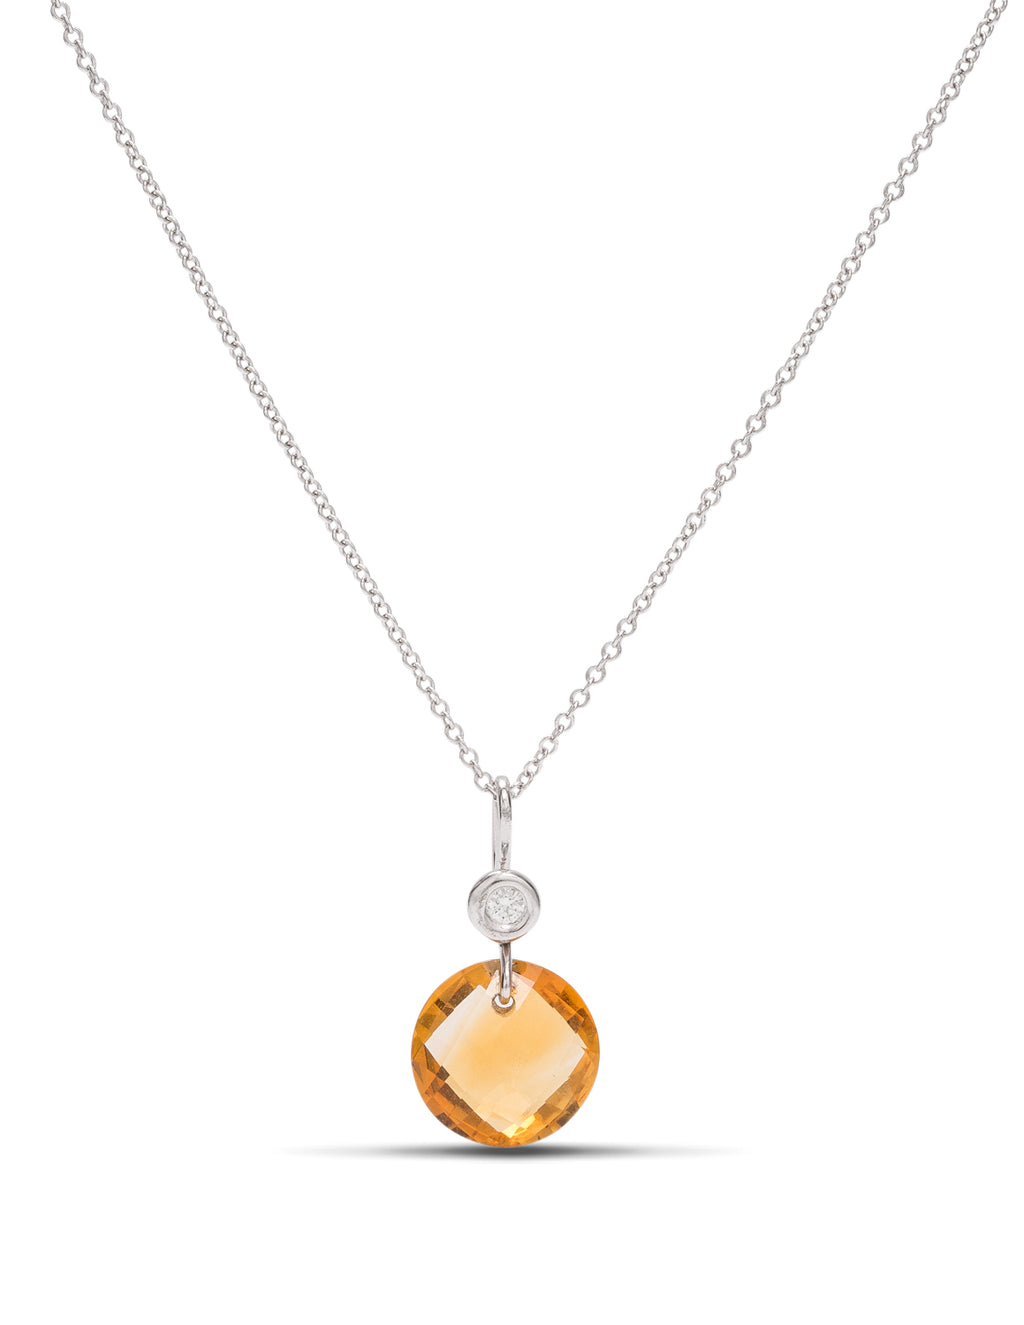 Citrine and Diamond Necklace - Charles Koll Jewellers